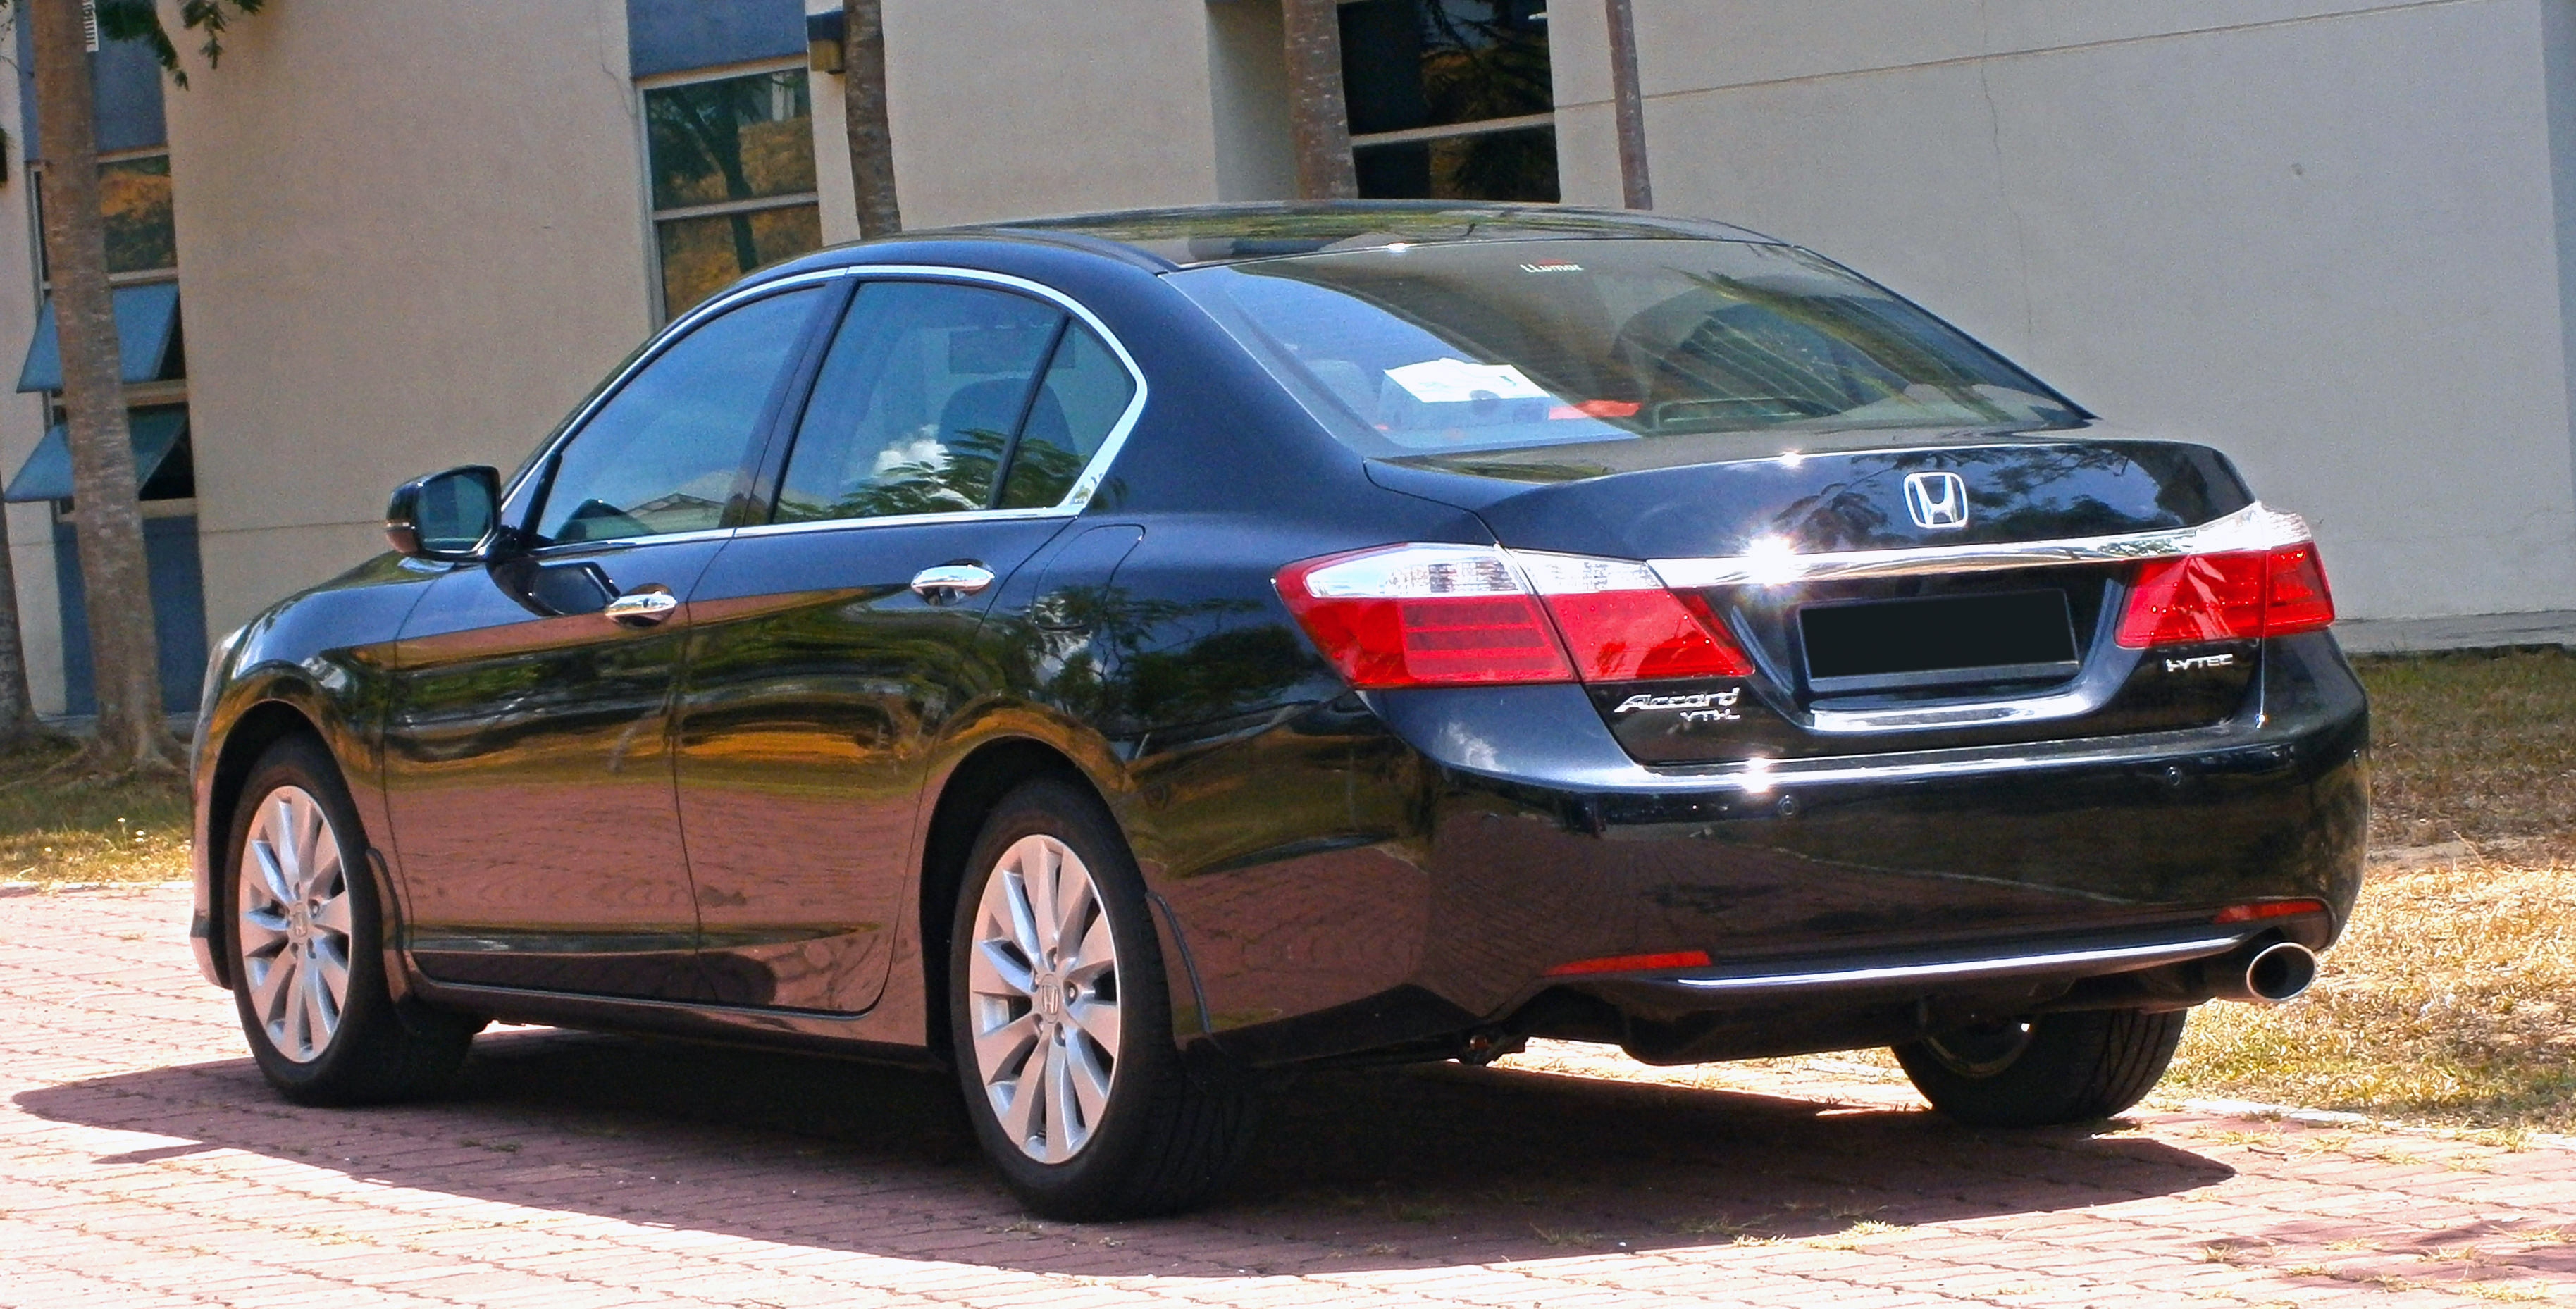 9Th Gen Accord >> File:2014 Honda Accord 2.0 VTi-L in Cyberjaya, Malaysia (03).jpg - Wikimedia Commons